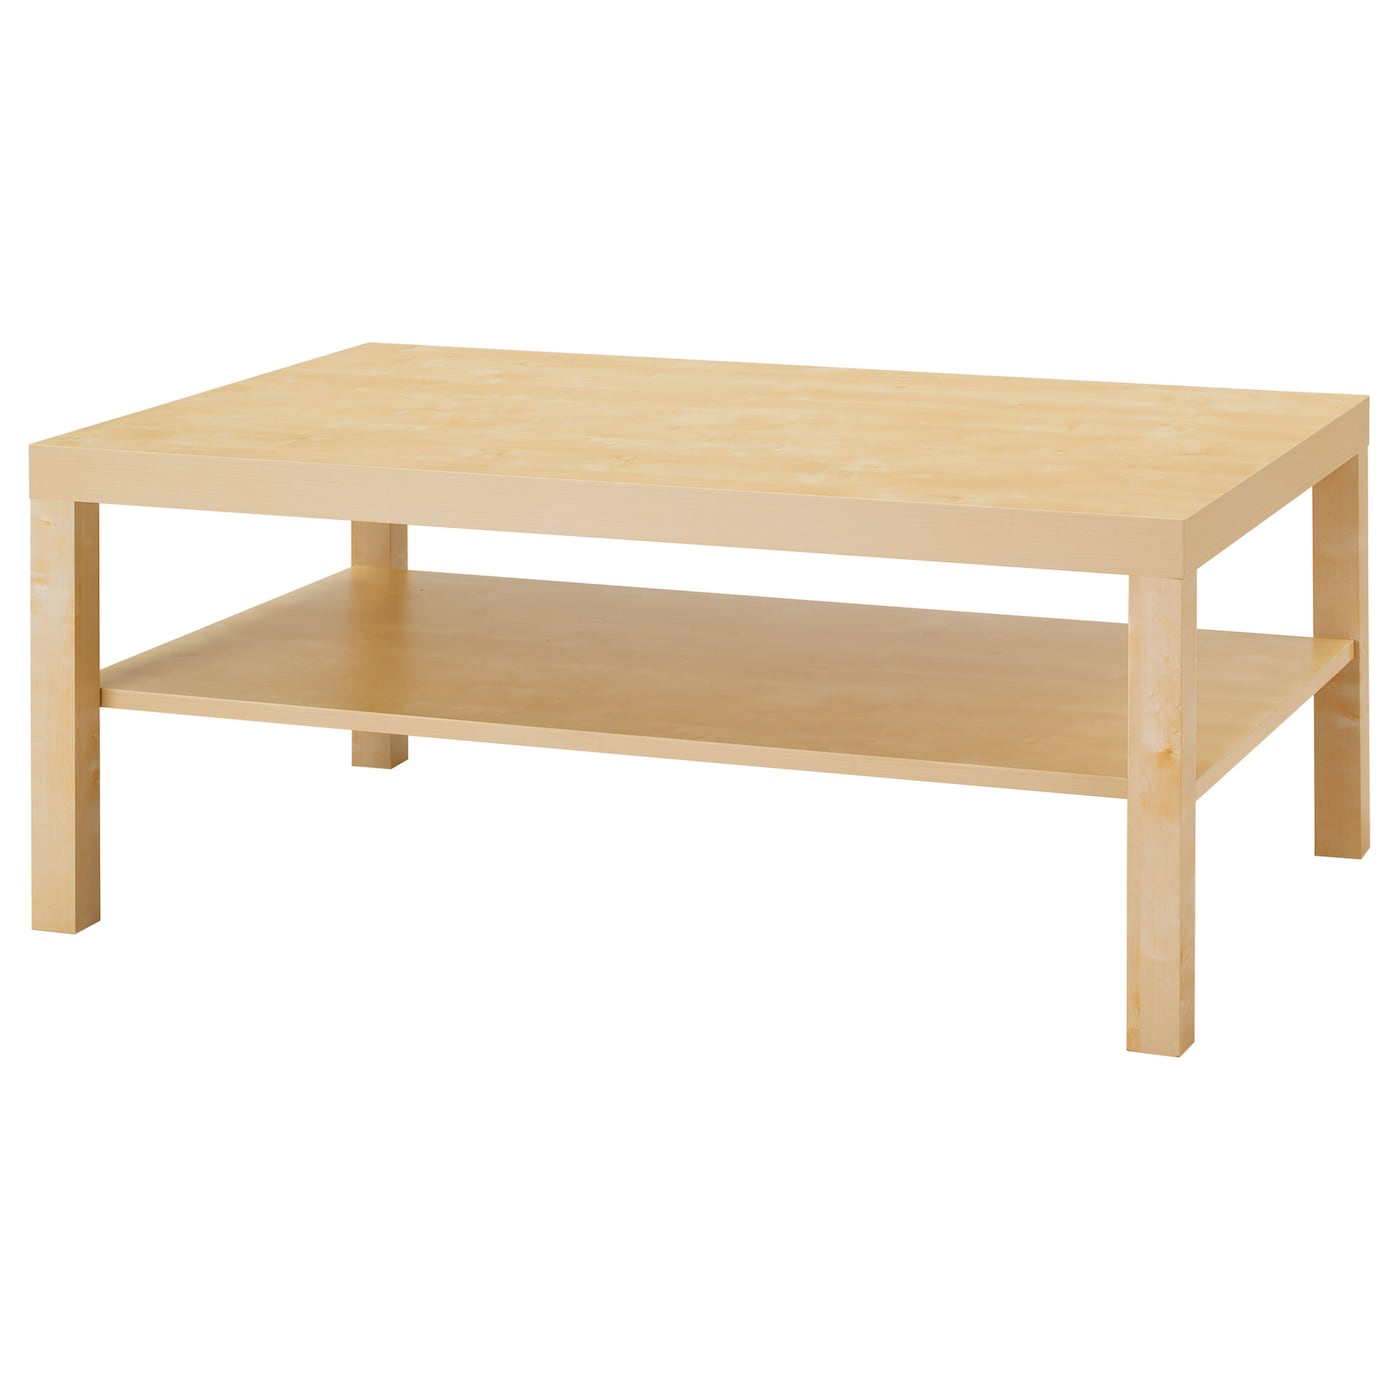 lack coffee table birch effect 118 x 78 cm ikea. Black Bedroom Furniture Sets. Home Design Ideas